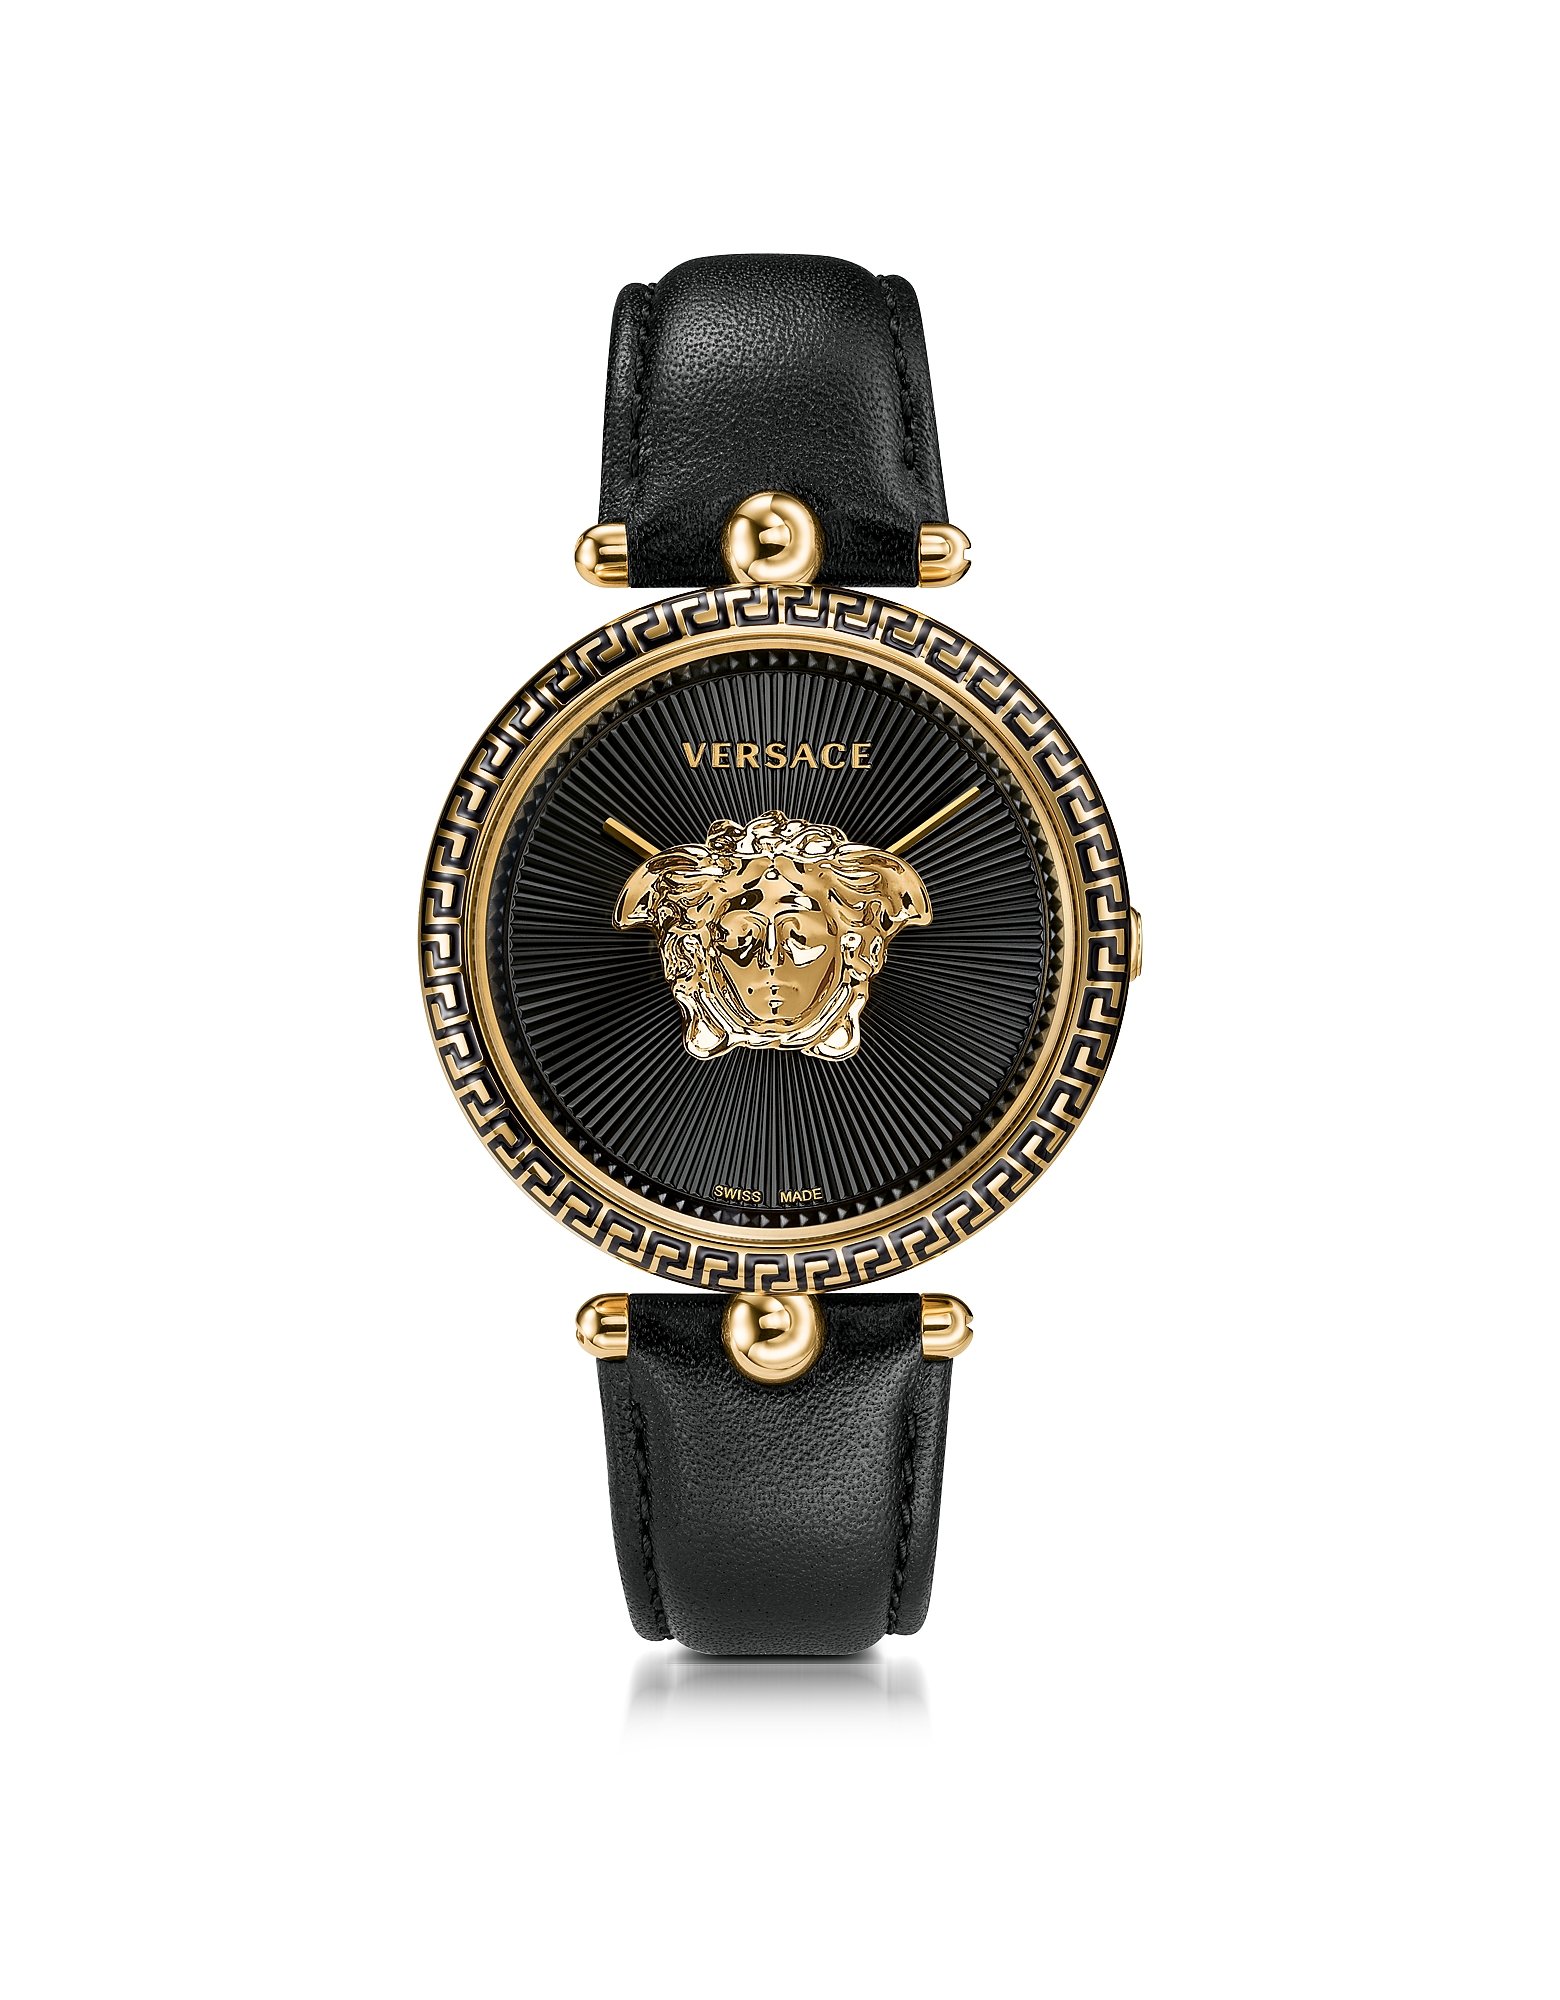 Versace Women's Watches, Palazzo Empire Black and PVD Plated Gold Women's Watch w/3D Medusa